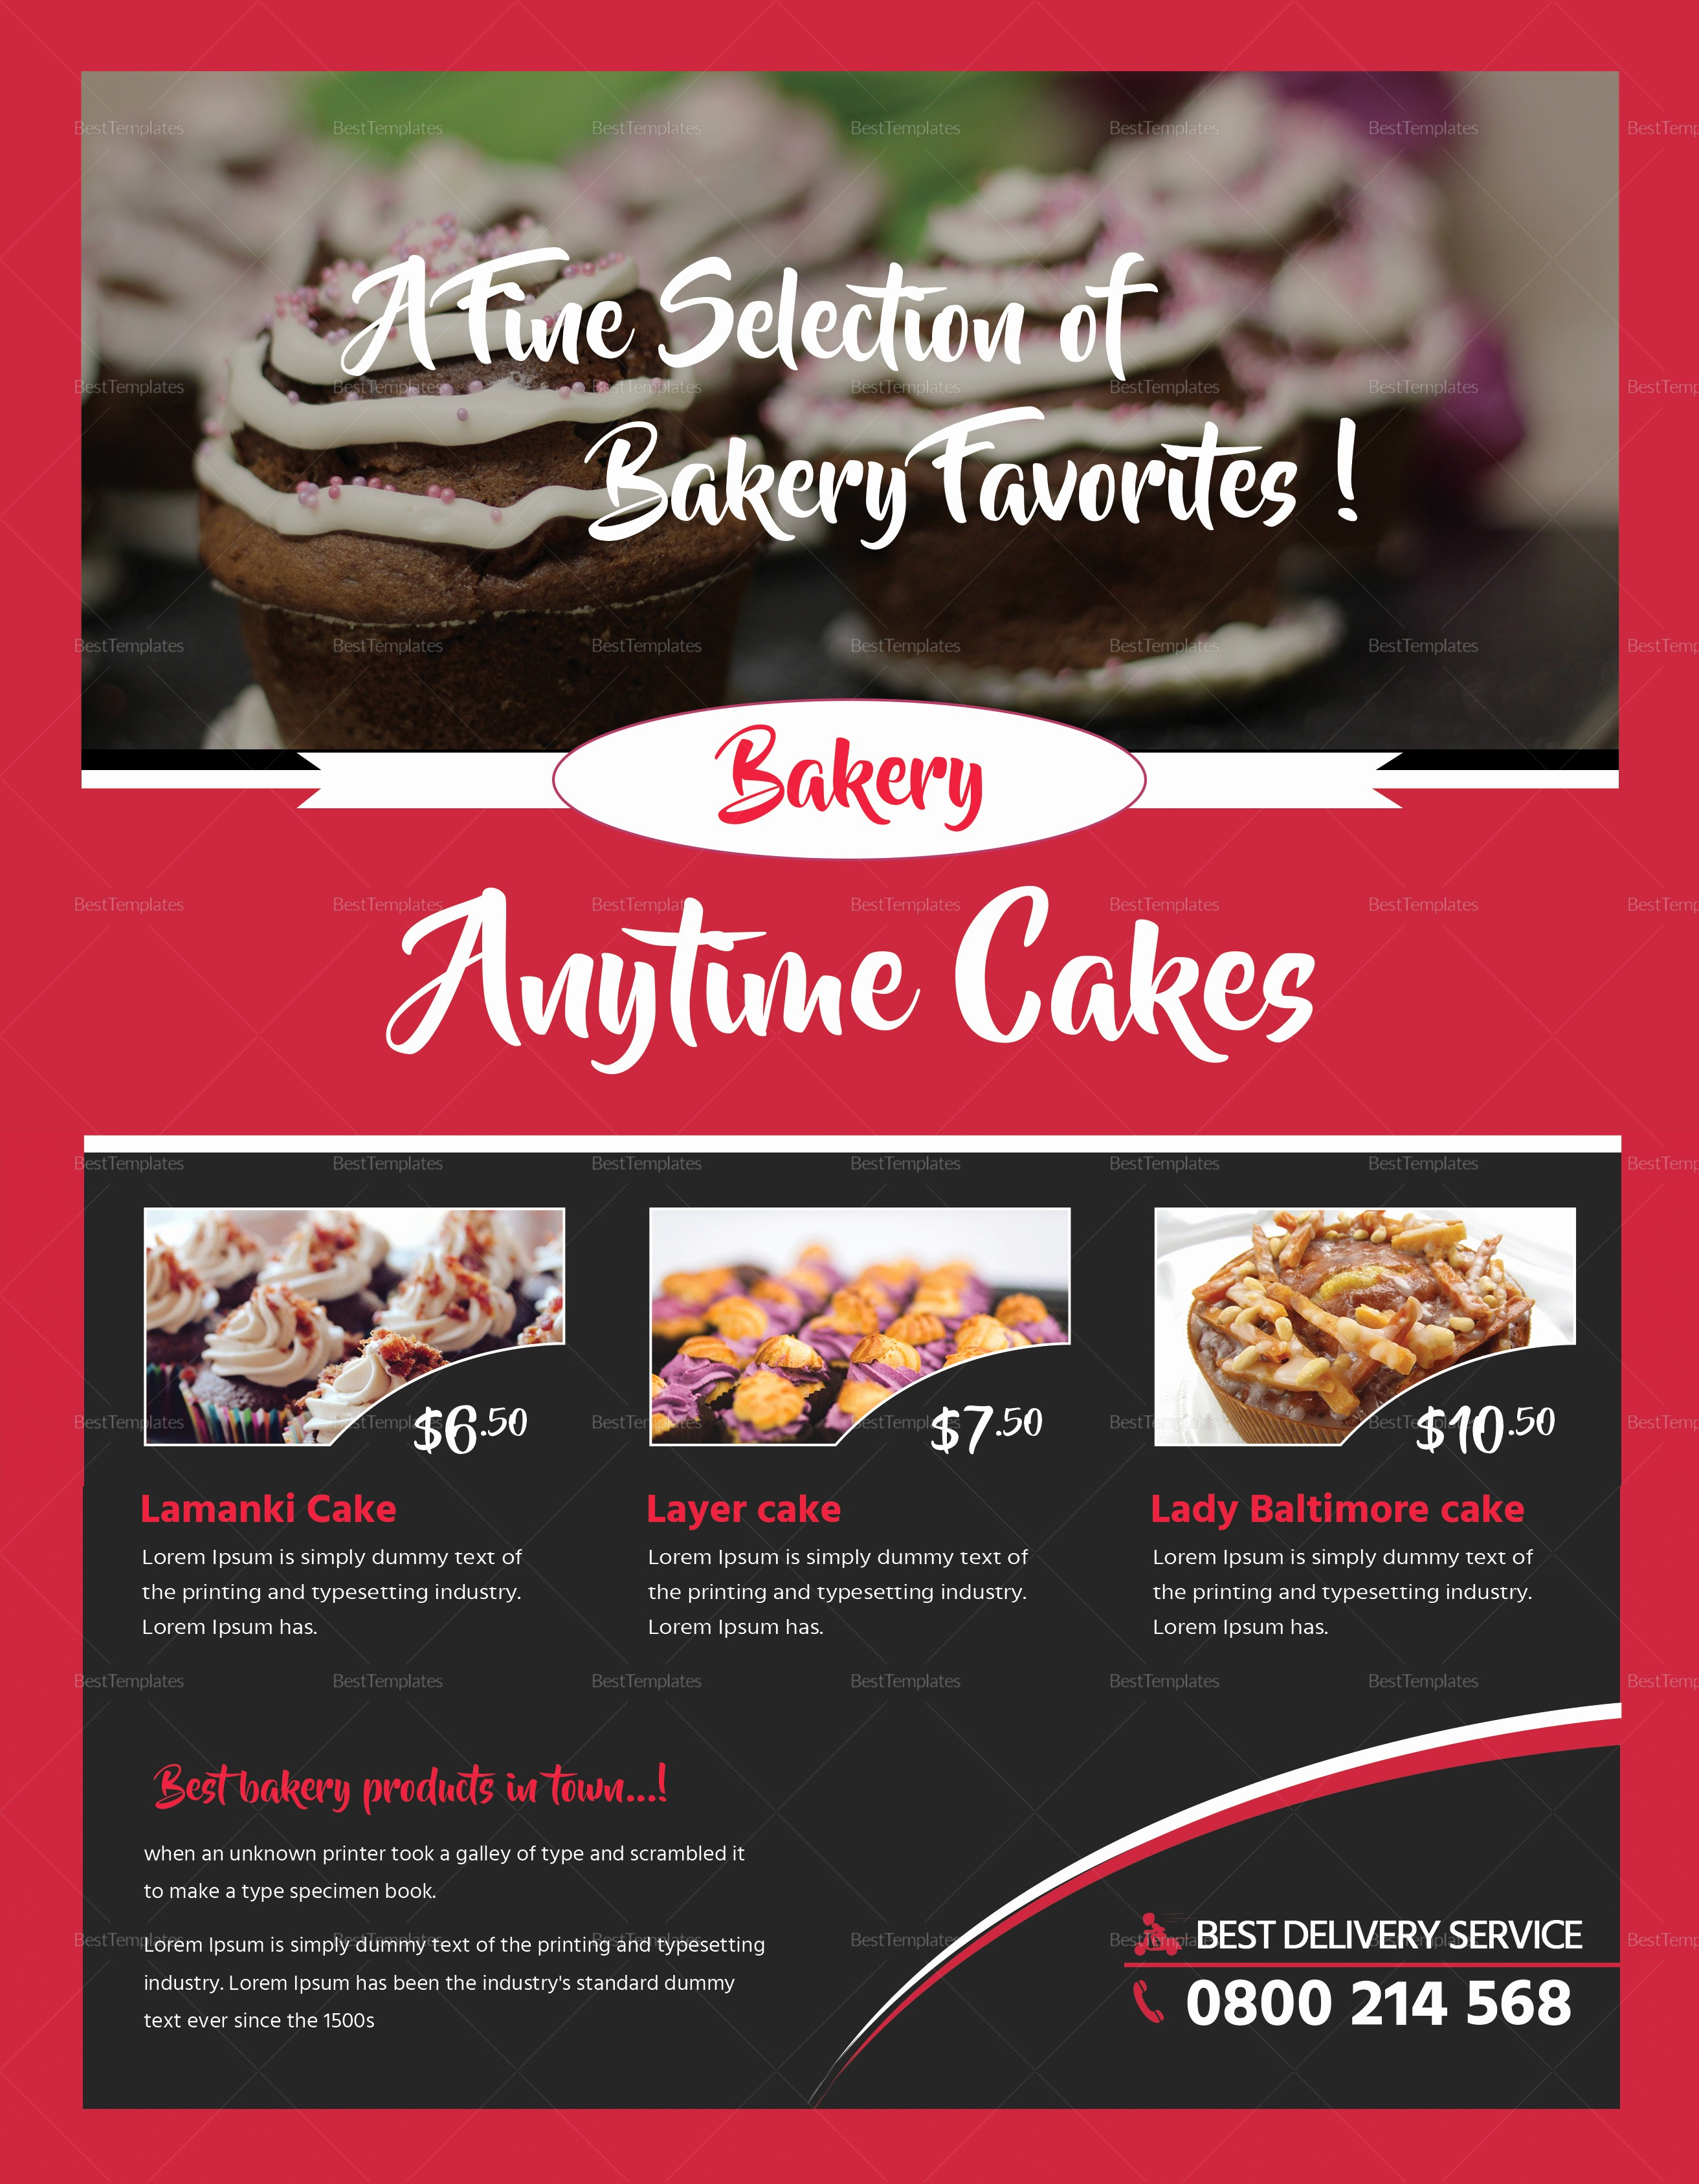 Bake Sale Flyer Template Word Awesome Customizable Bake Sale Flyer Design Template In Psd Word